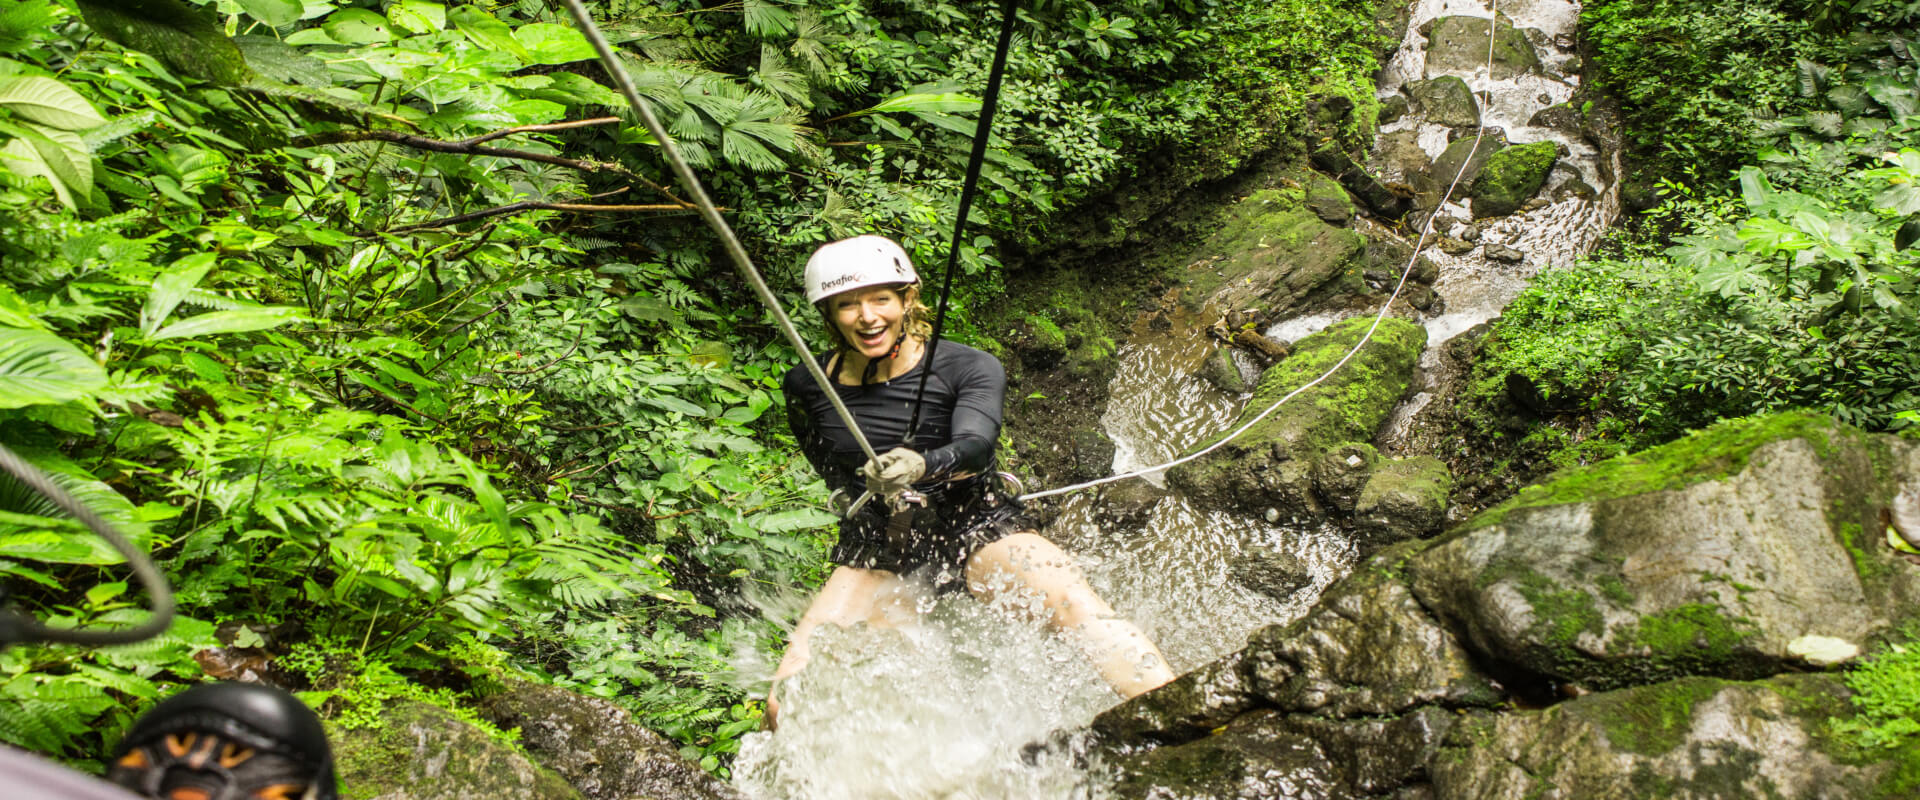 Canyoning in the Lost Canyon | Costa Rica Jade Tours